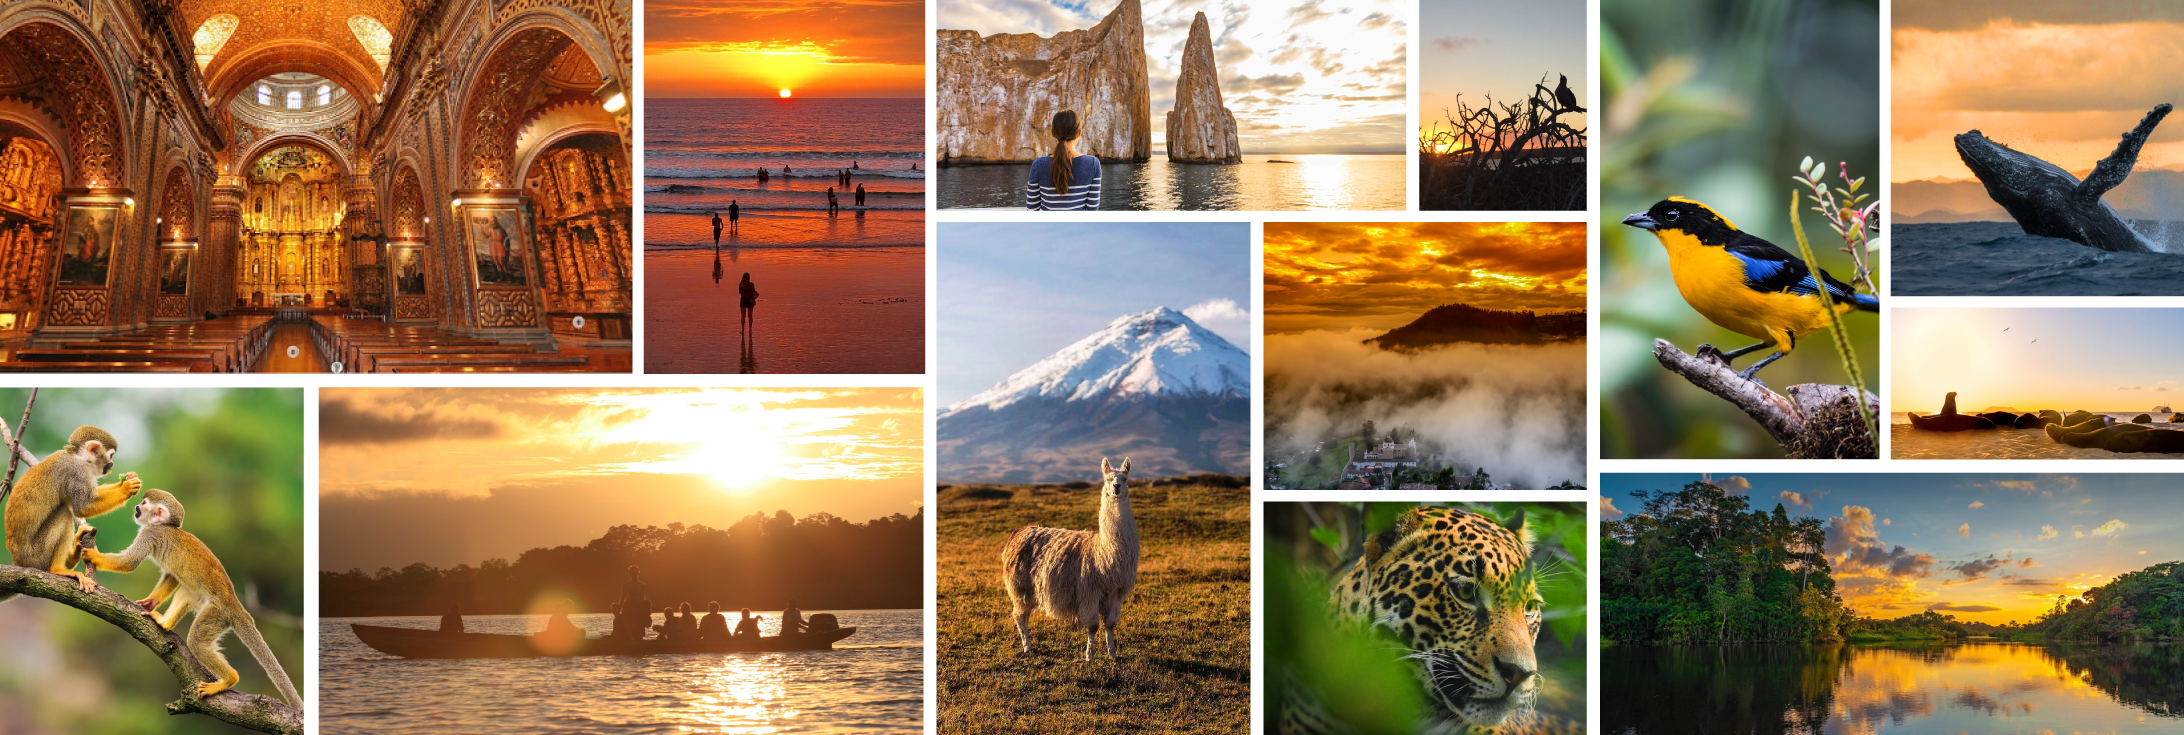 Travel Styles DMC Andean Travel Company Essence in Details Ecuador and Galapagos Islands